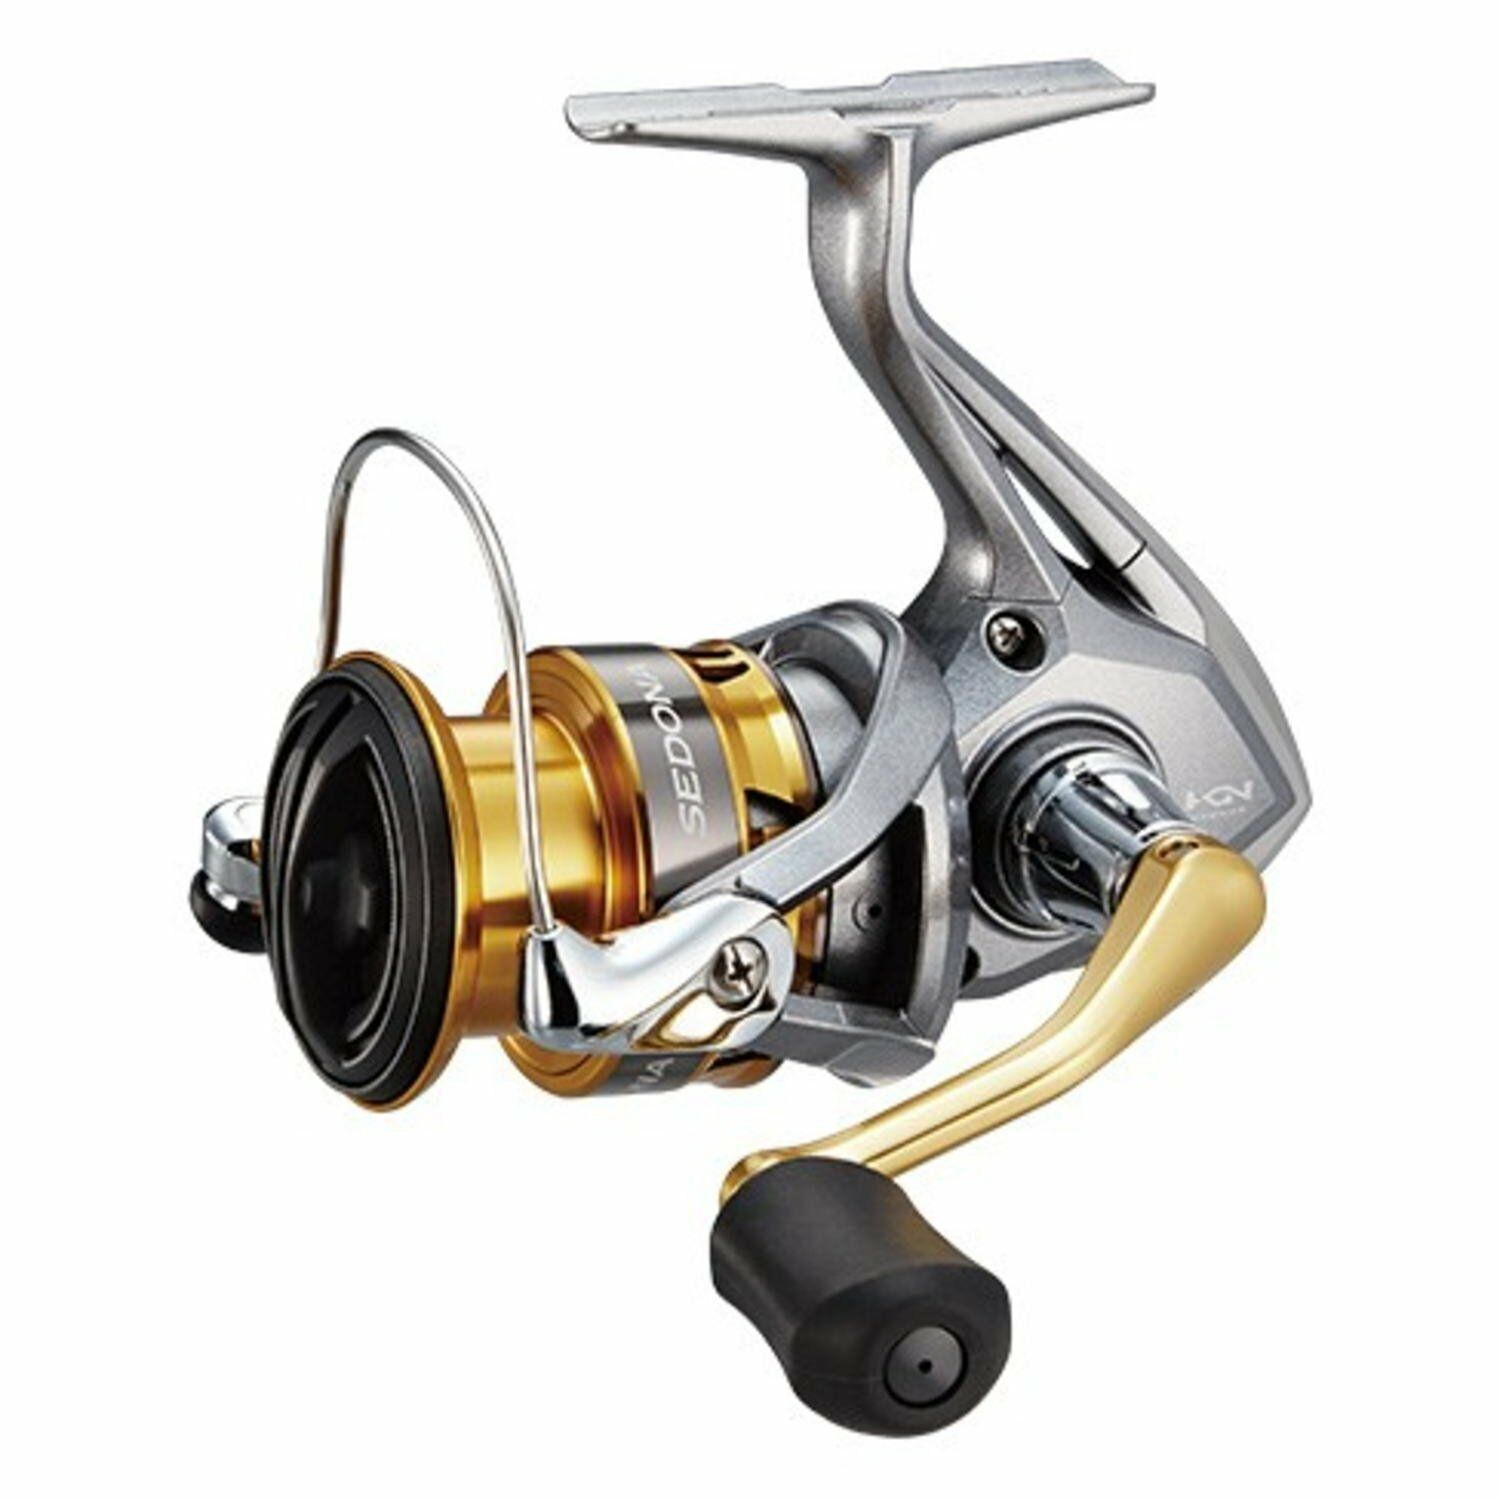 New Shimano 17 SEDONA 2500 Spininng Reel Salt Water Fishing